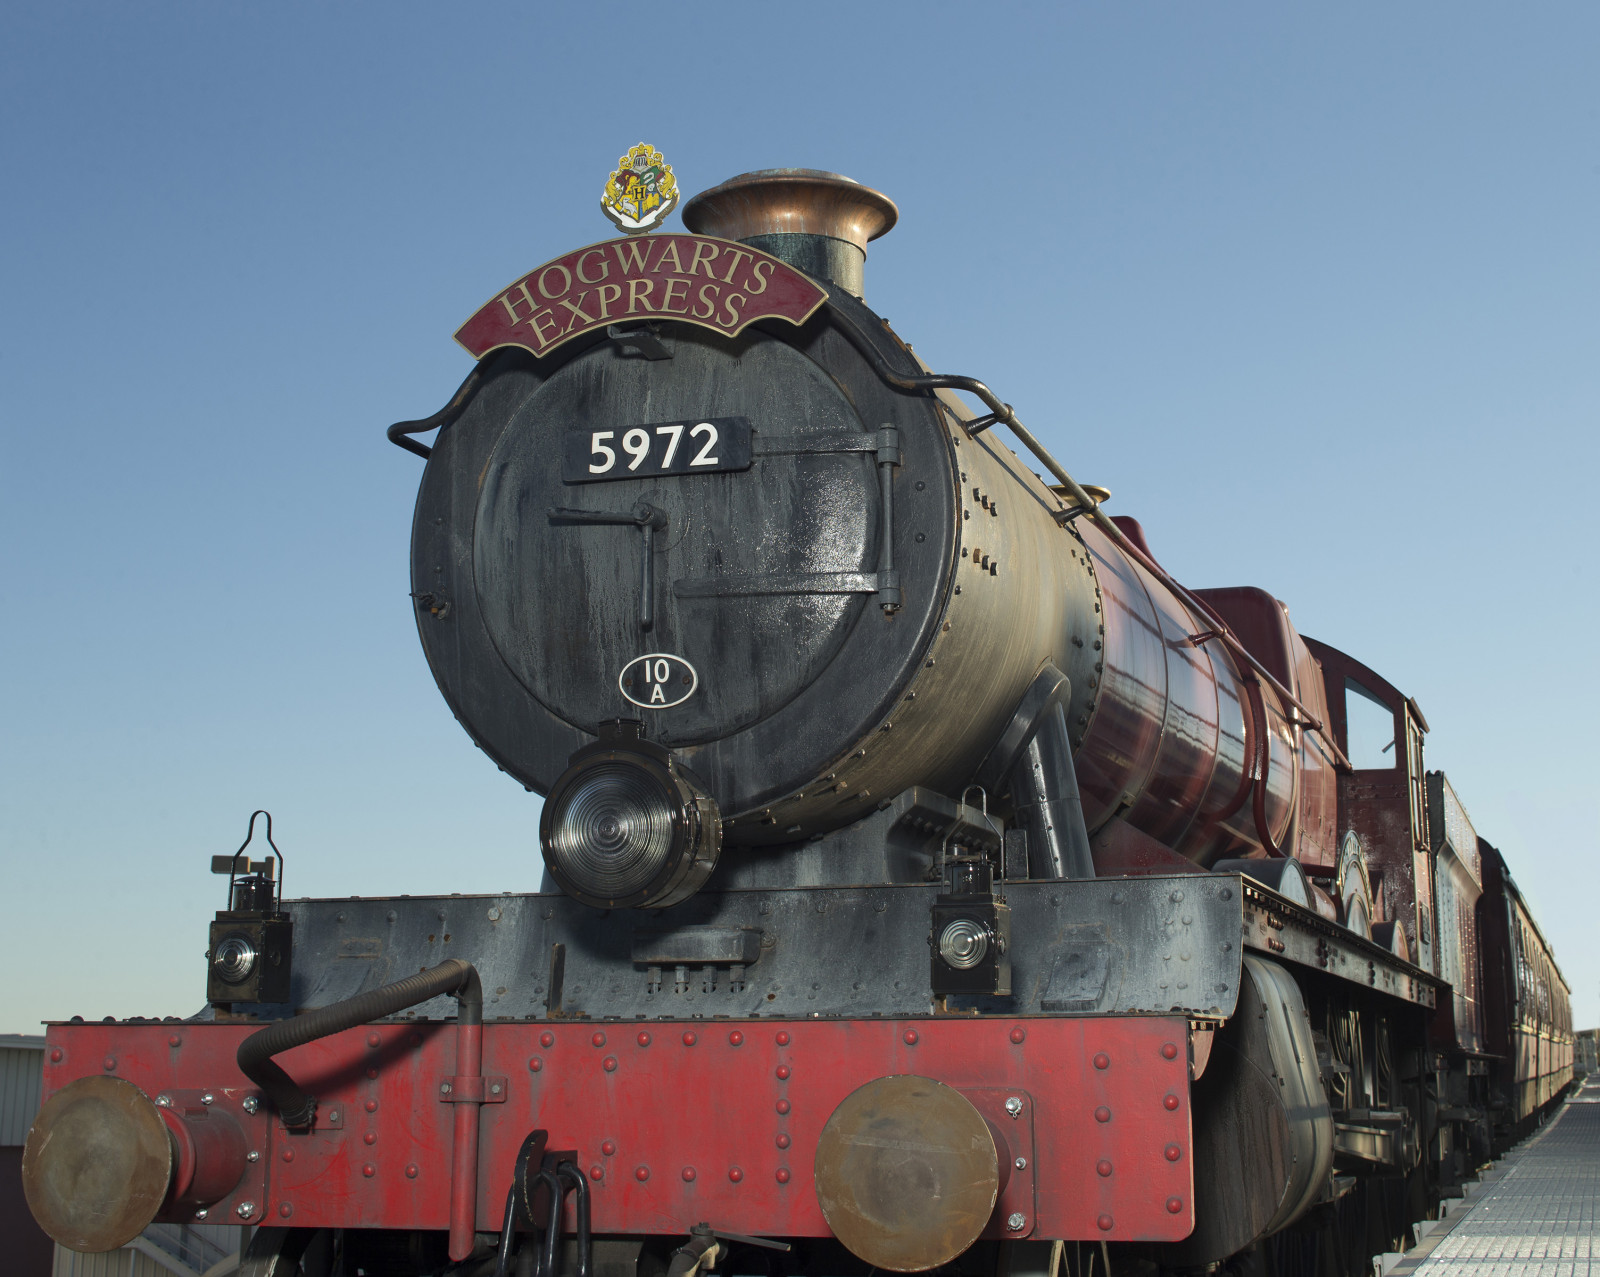 Hogwarts Express Universal Orlando Resort Diagon Alley Harry Potter